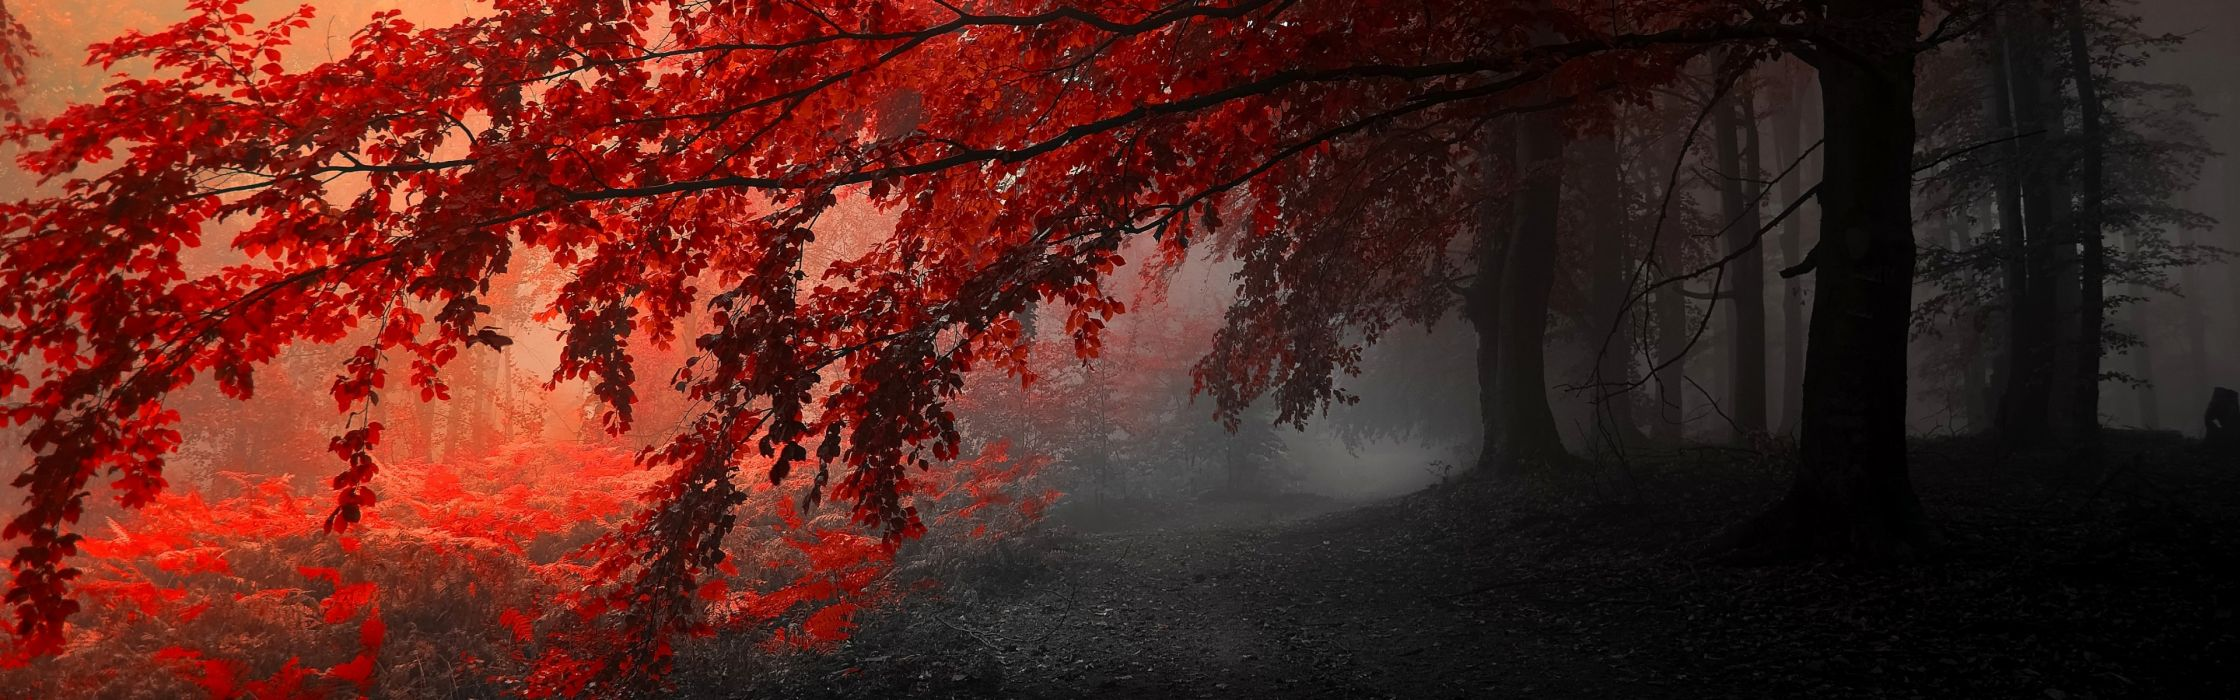 two monitor wallpaper,nature,tree,red,leaf,atmospheric phenomenon